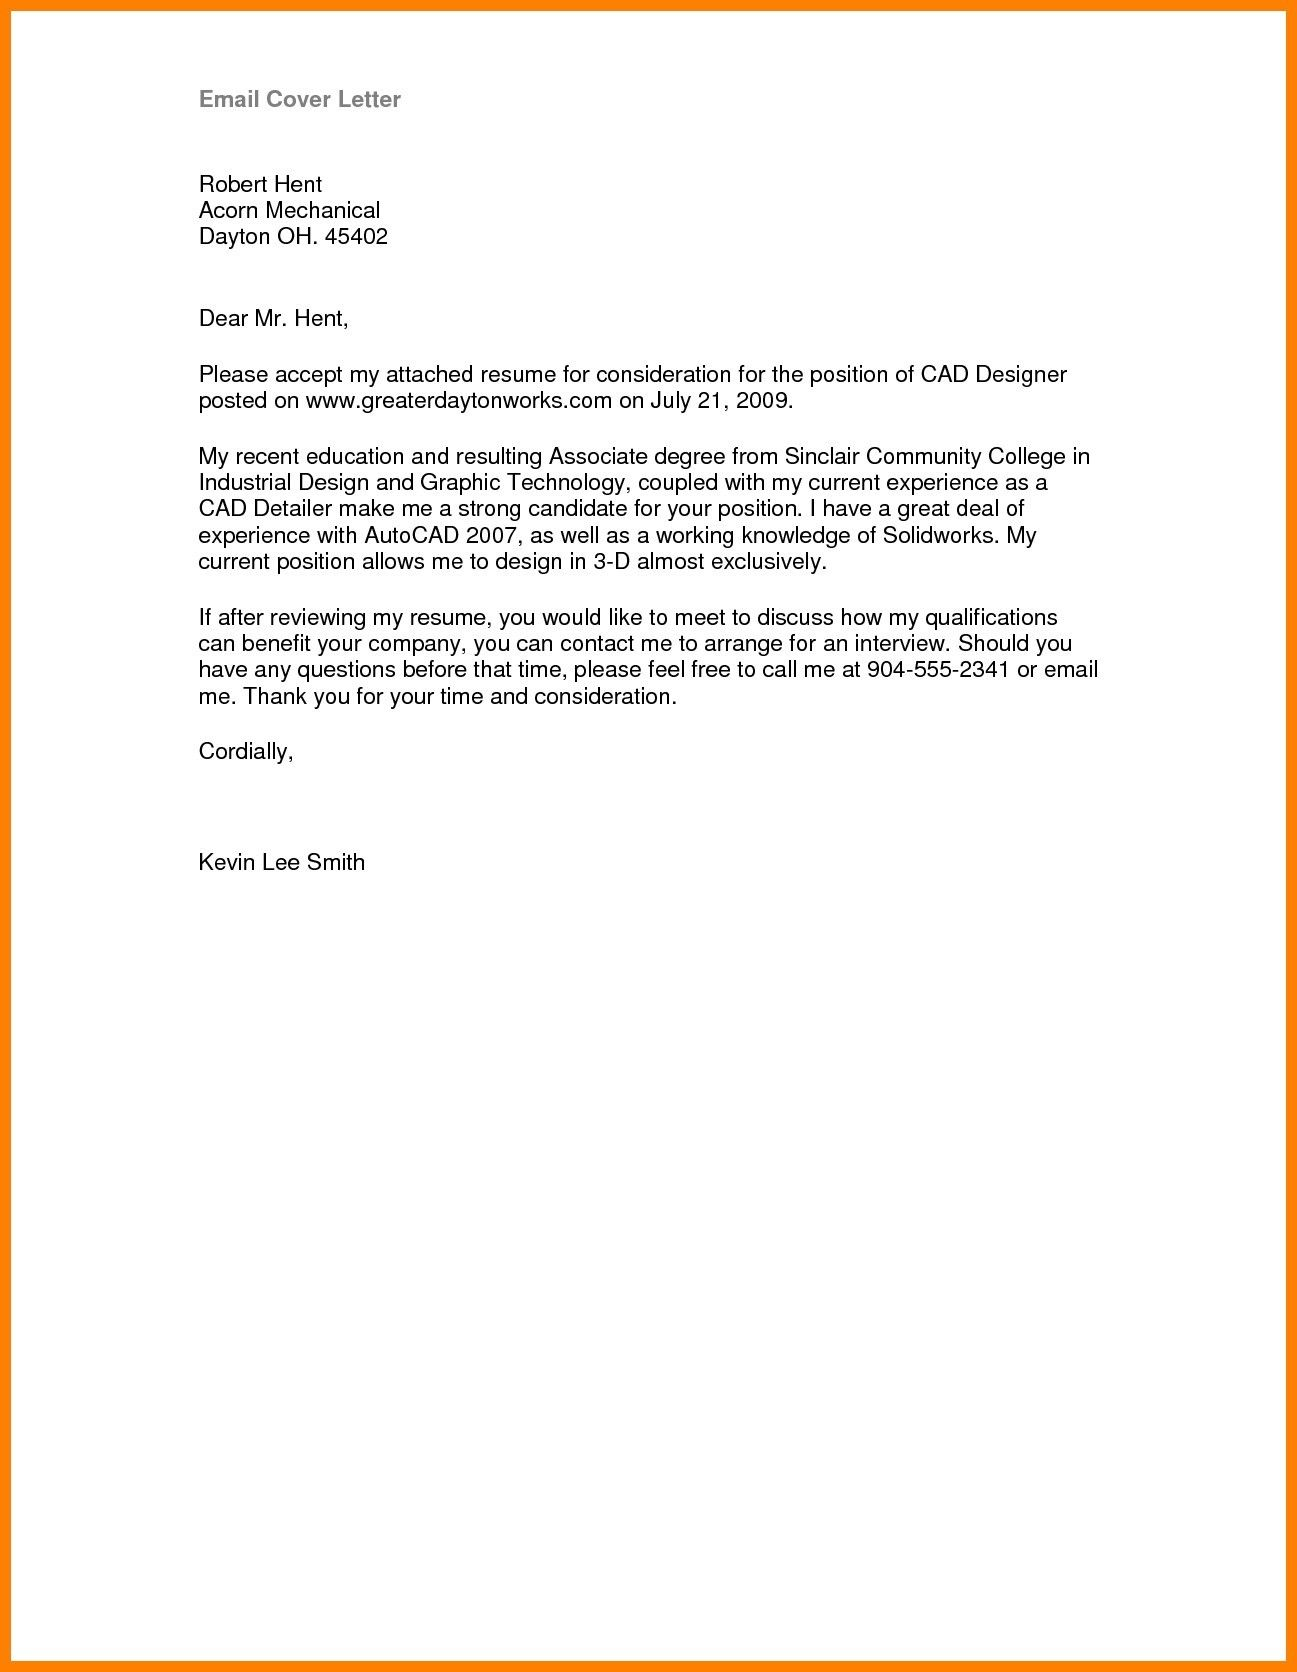 Sample Email Cover Letter For Resume 25 Email Cover Letter Sample Email Cover Letter Sample Cover